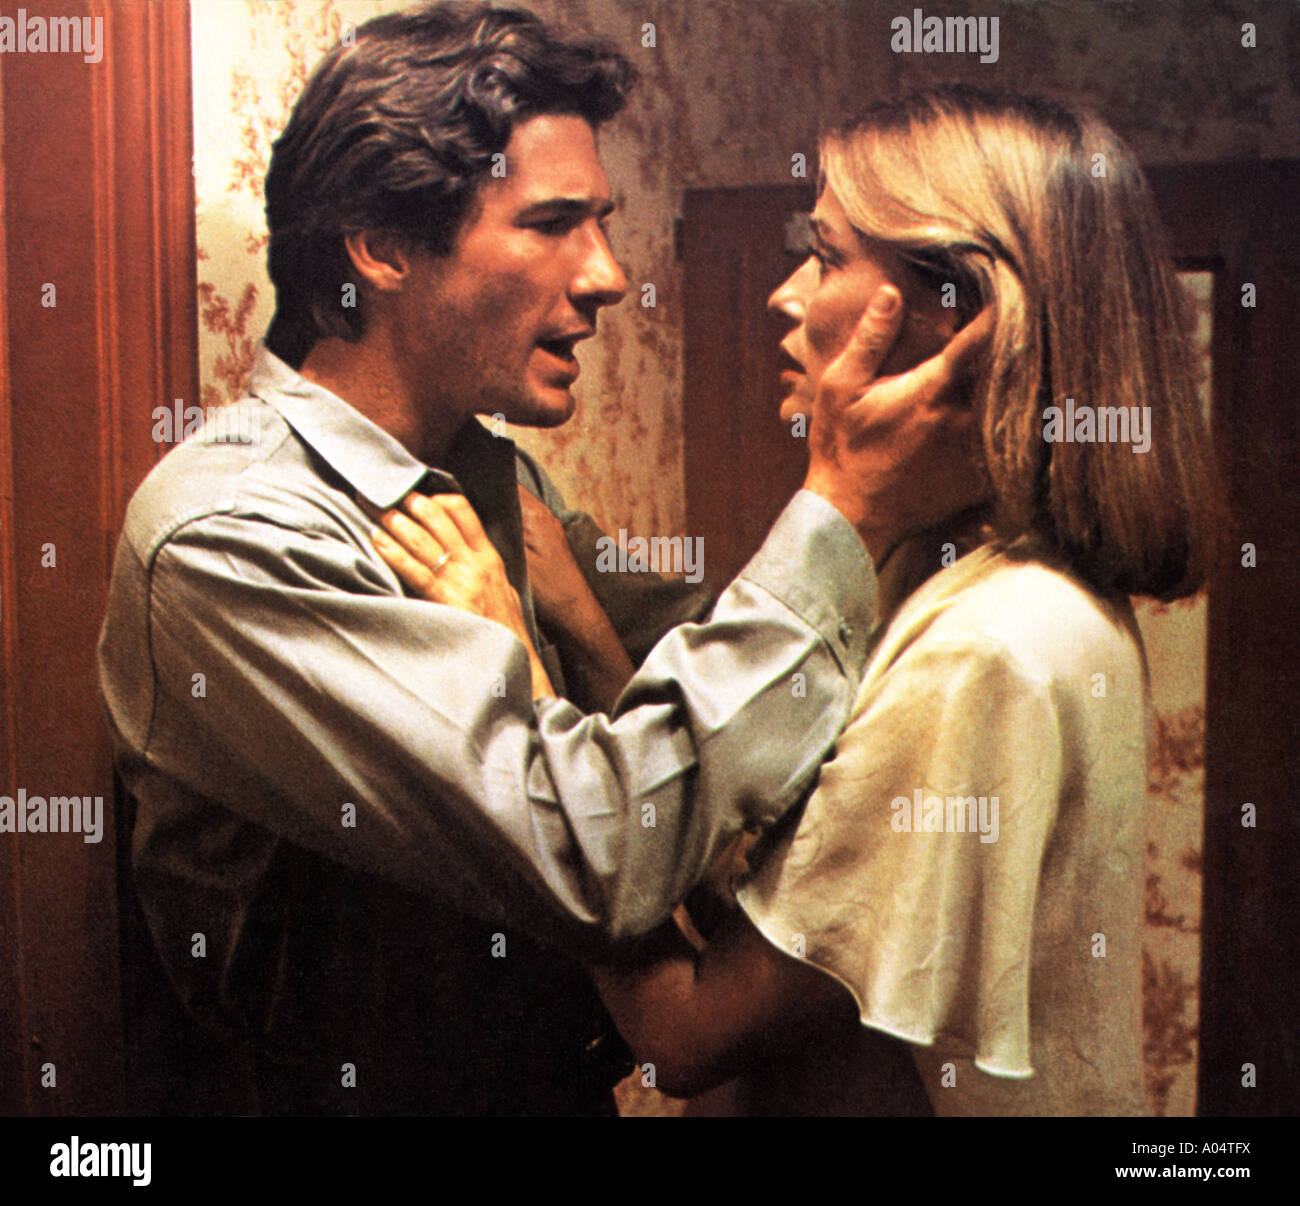 AMERICAN GIGOLO 1980 Paramount film with Richard Gear and ...